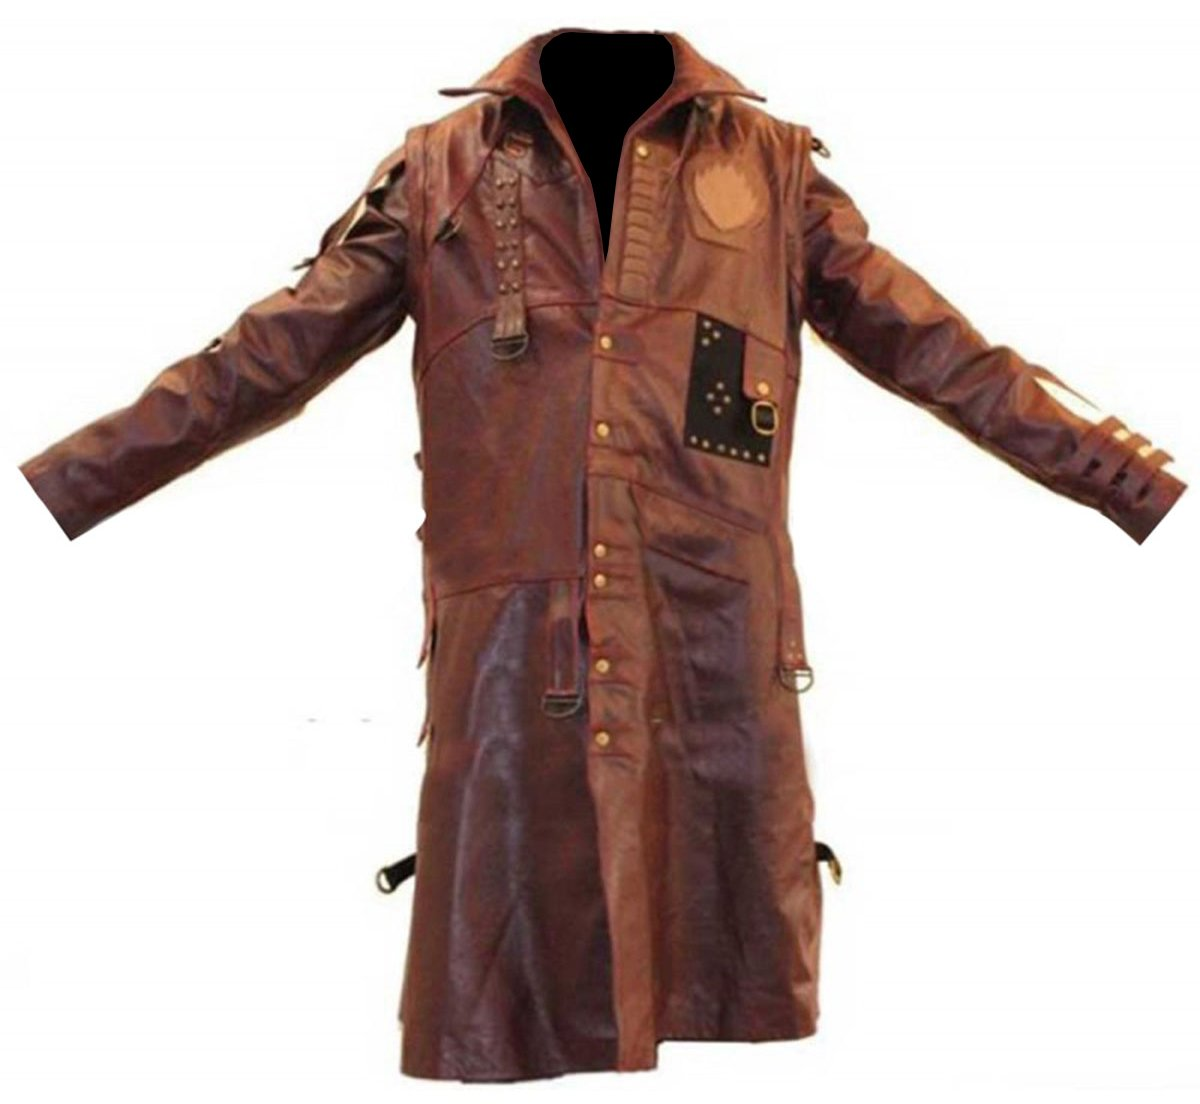 GOTG 2 Michael Rooker Yondu Brown Faux Leather Trench Coat